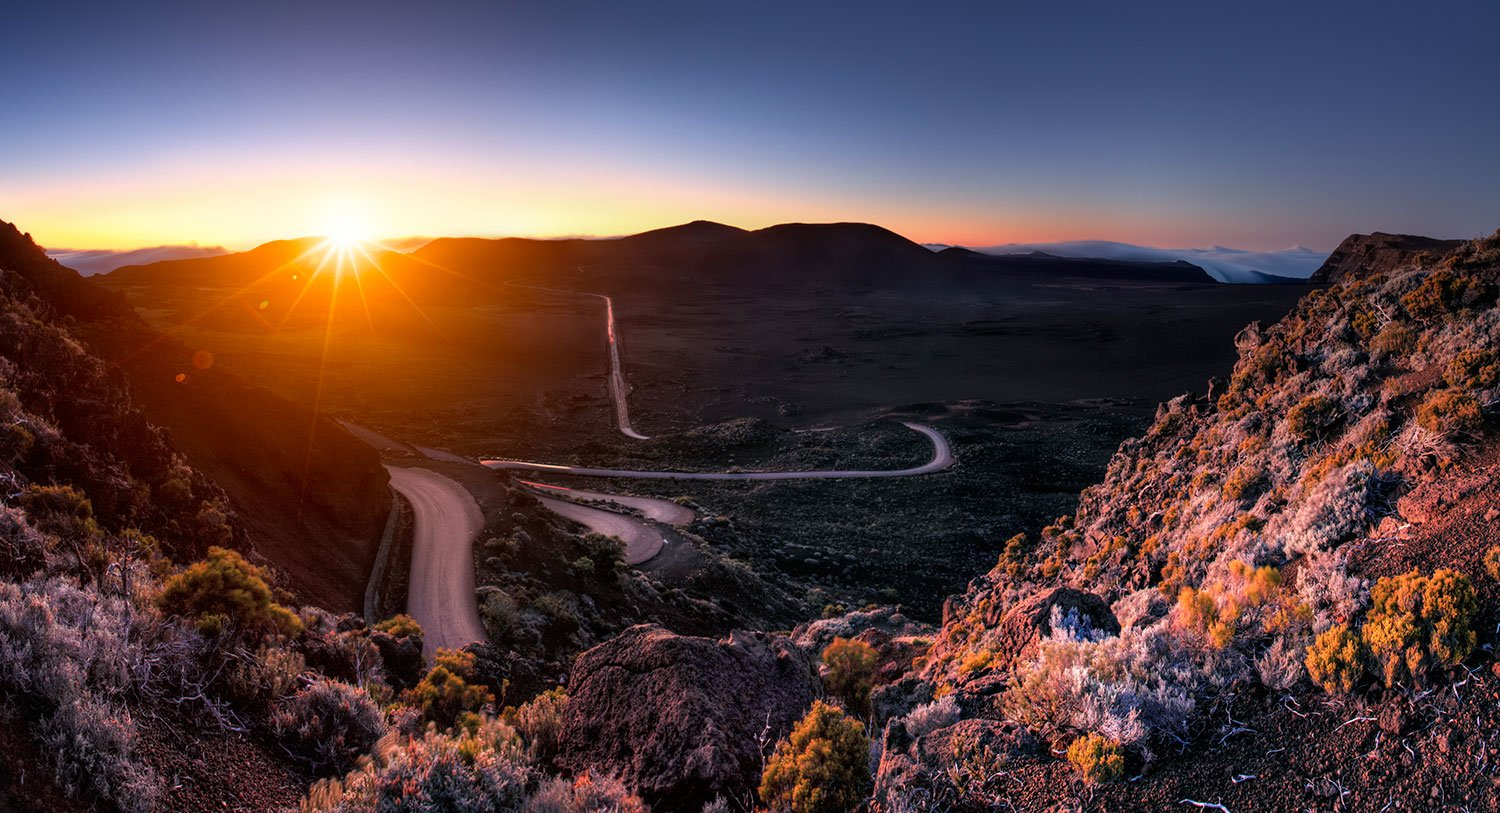 ARTICLE-Reunion Island, the most beautiful volcanic destination in the world